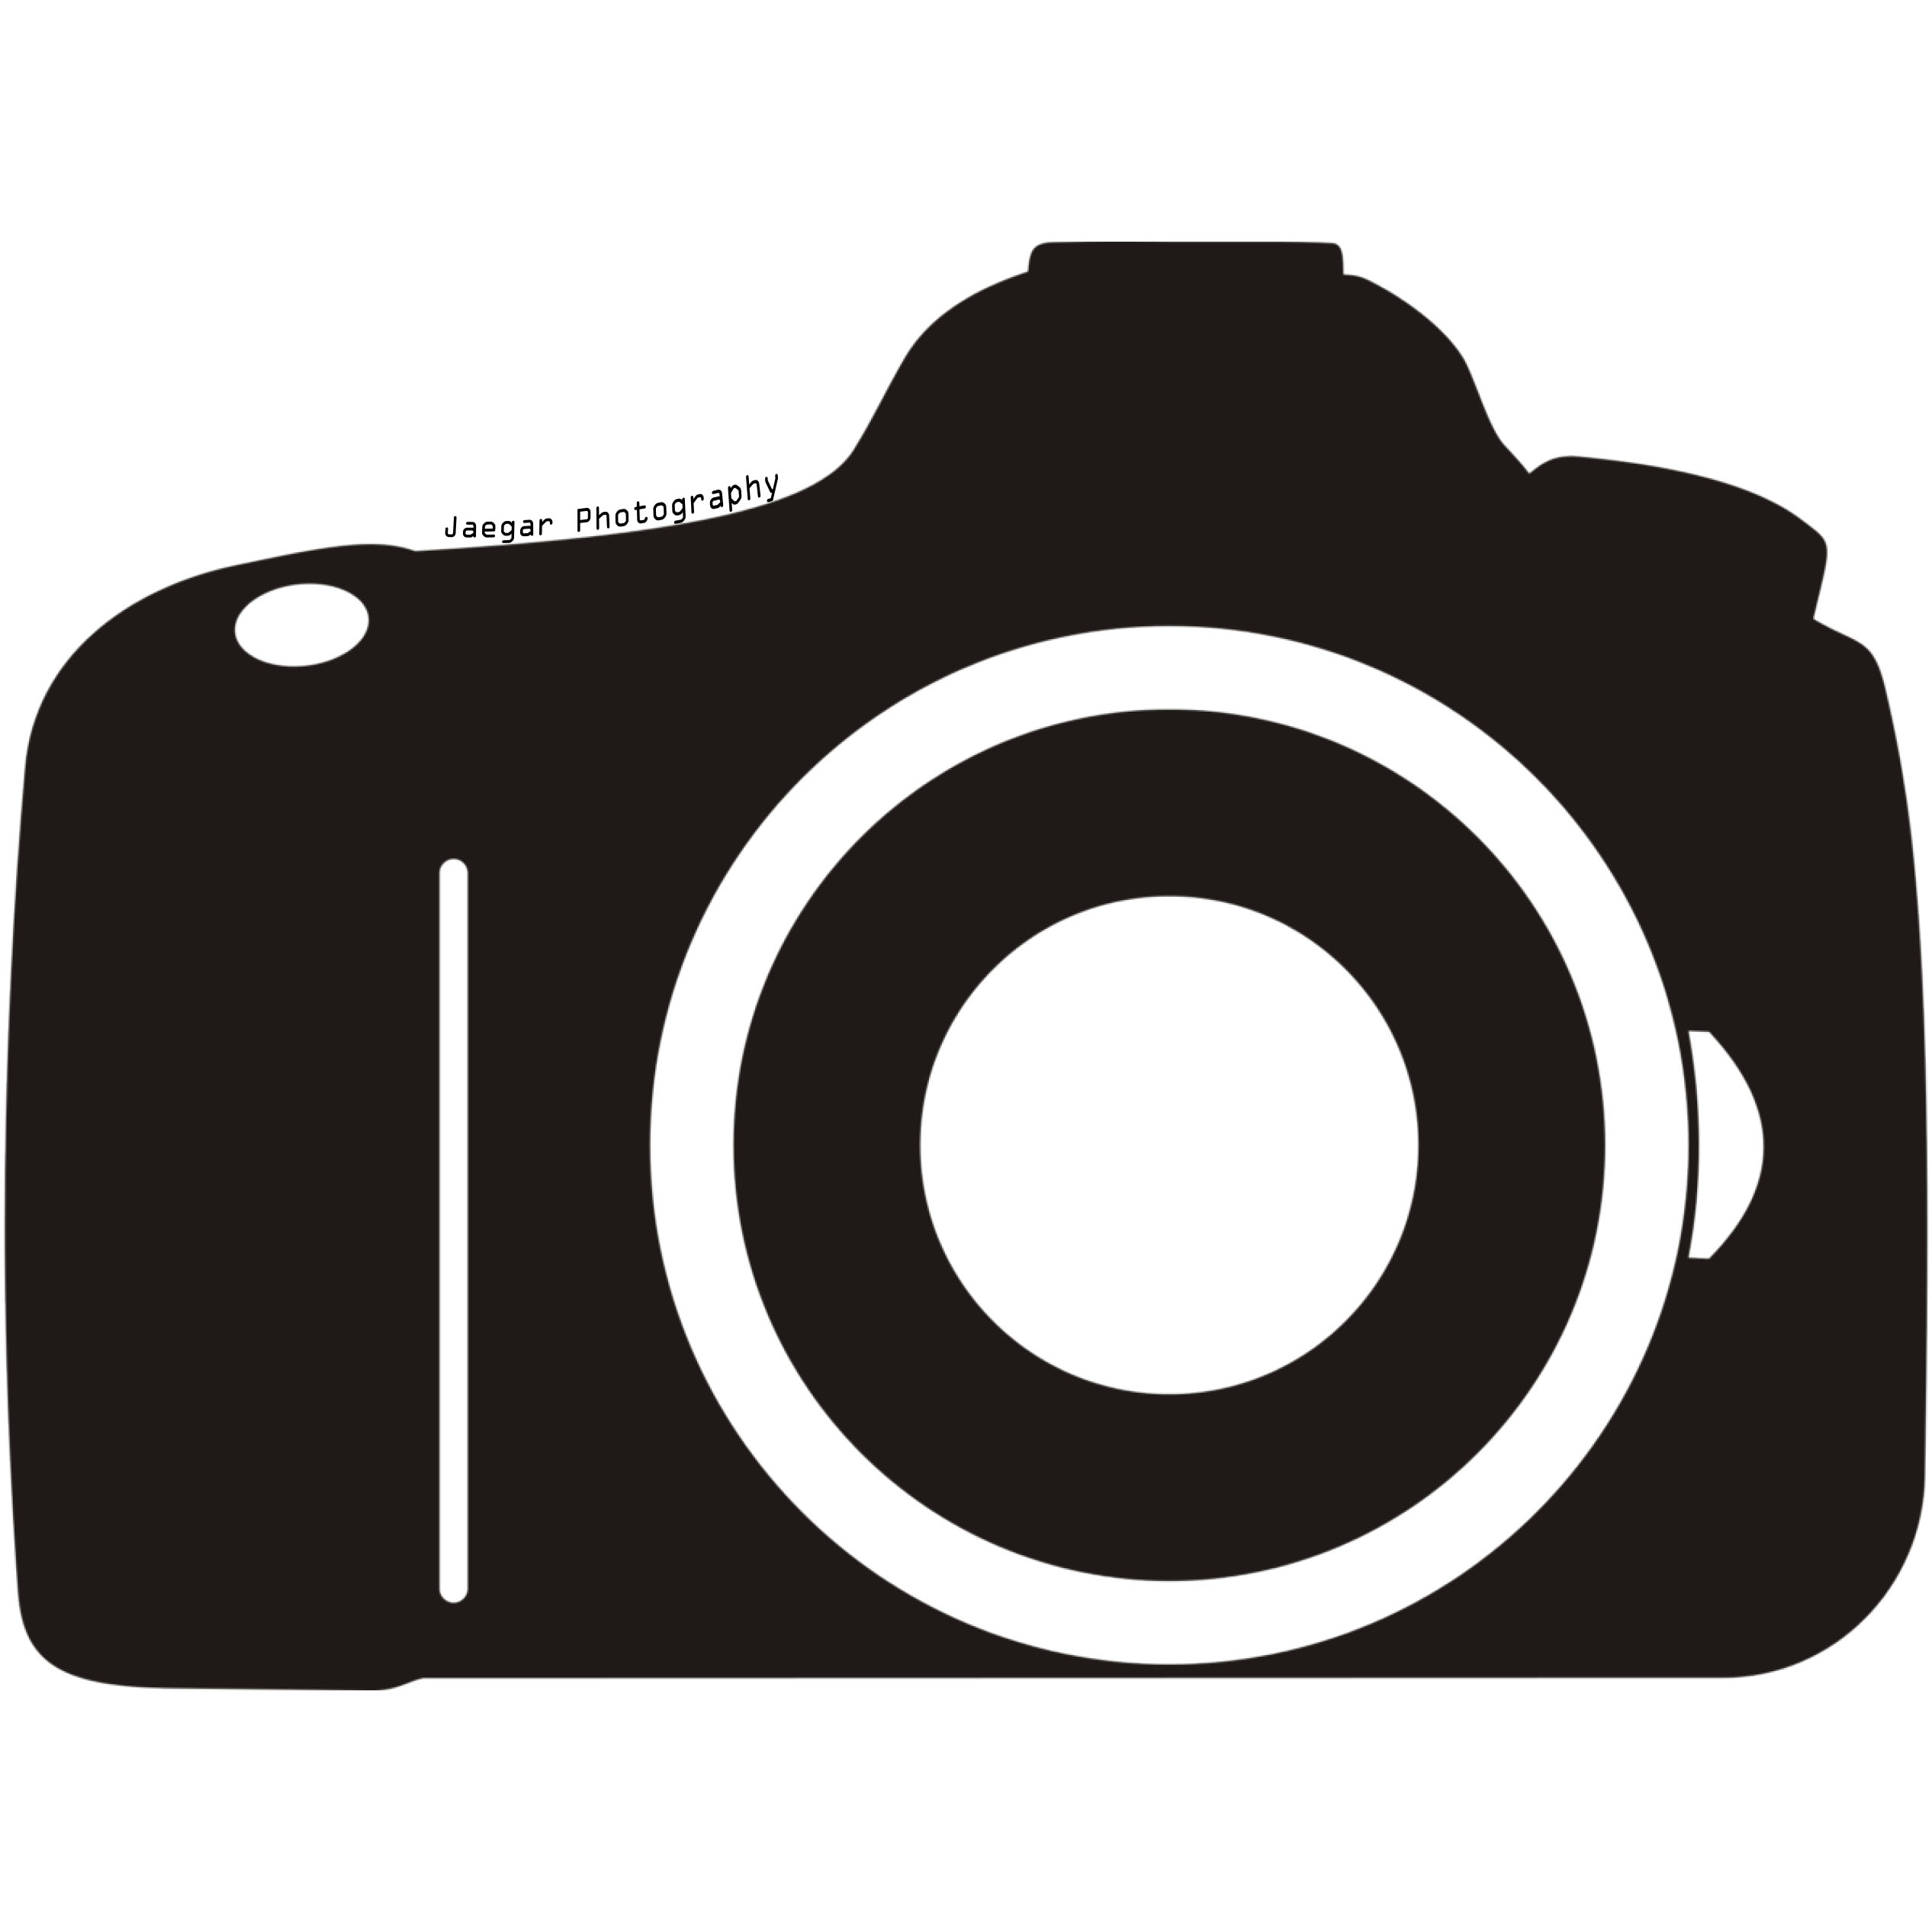 Free Camera Logo, Download Free Clip Art, Free Clip Art on.